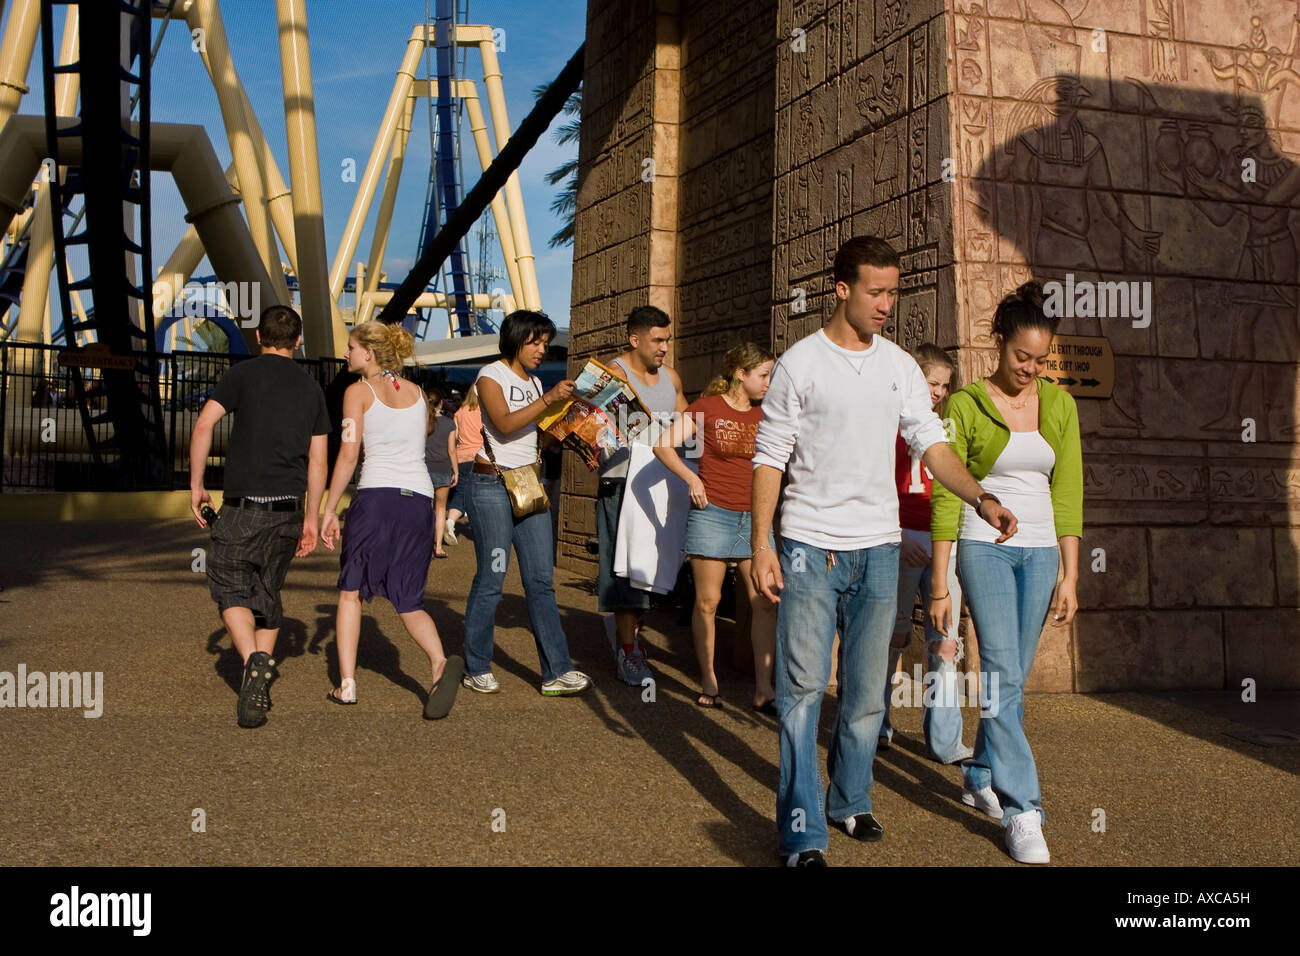 People Having Fun Busch Gardens Stock Photos & People Having Fun ...